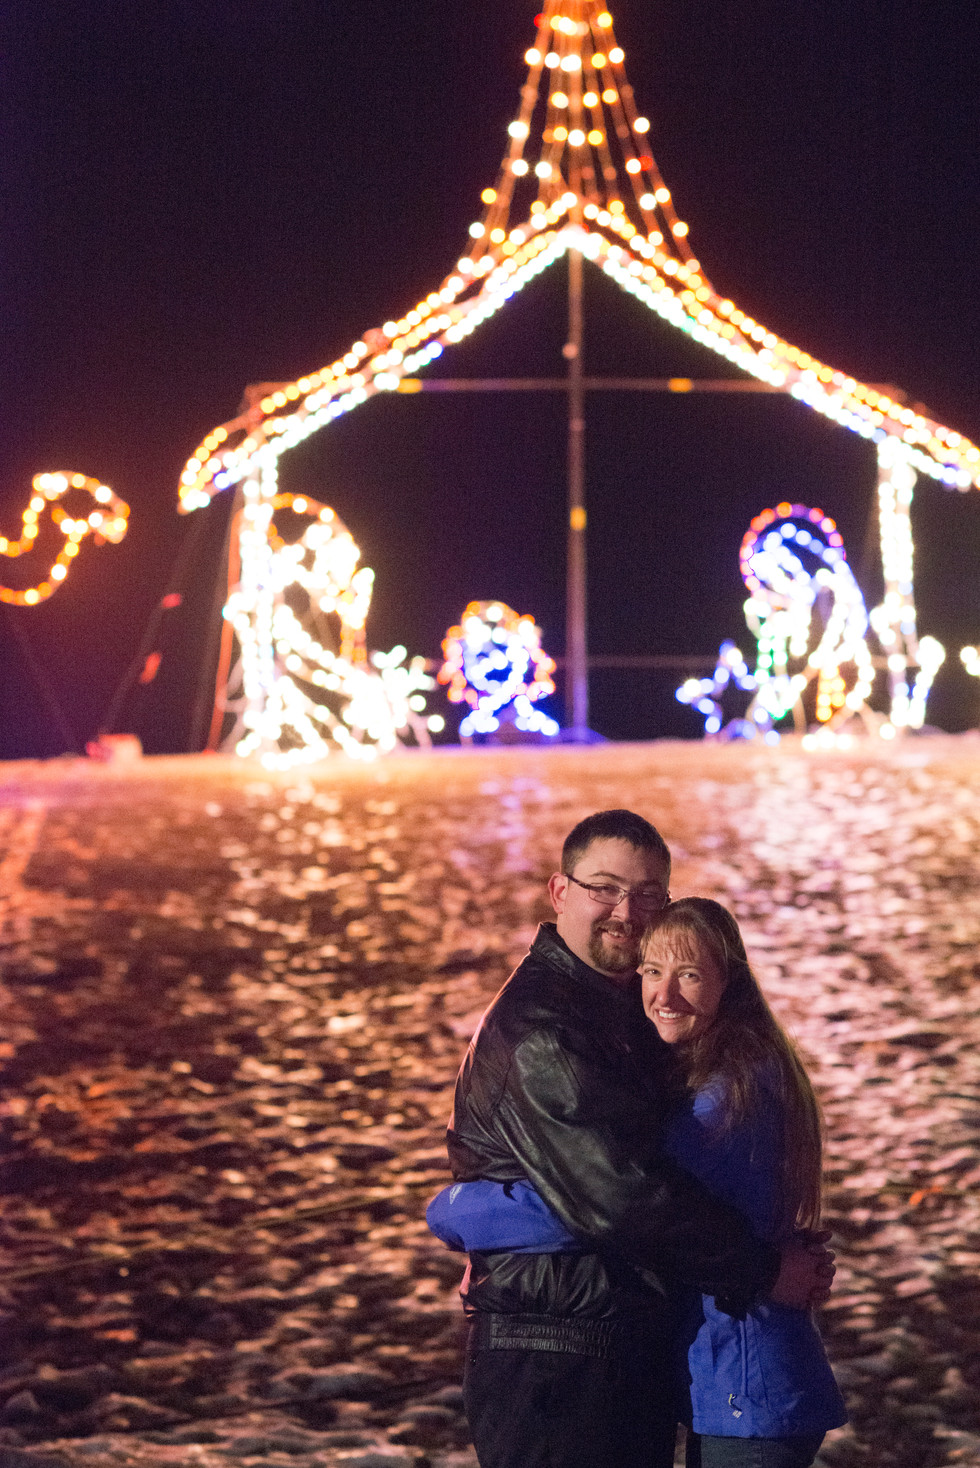 Airdrie Christmas Lights Proposal - Airdrie, AB - Proposal Photographer